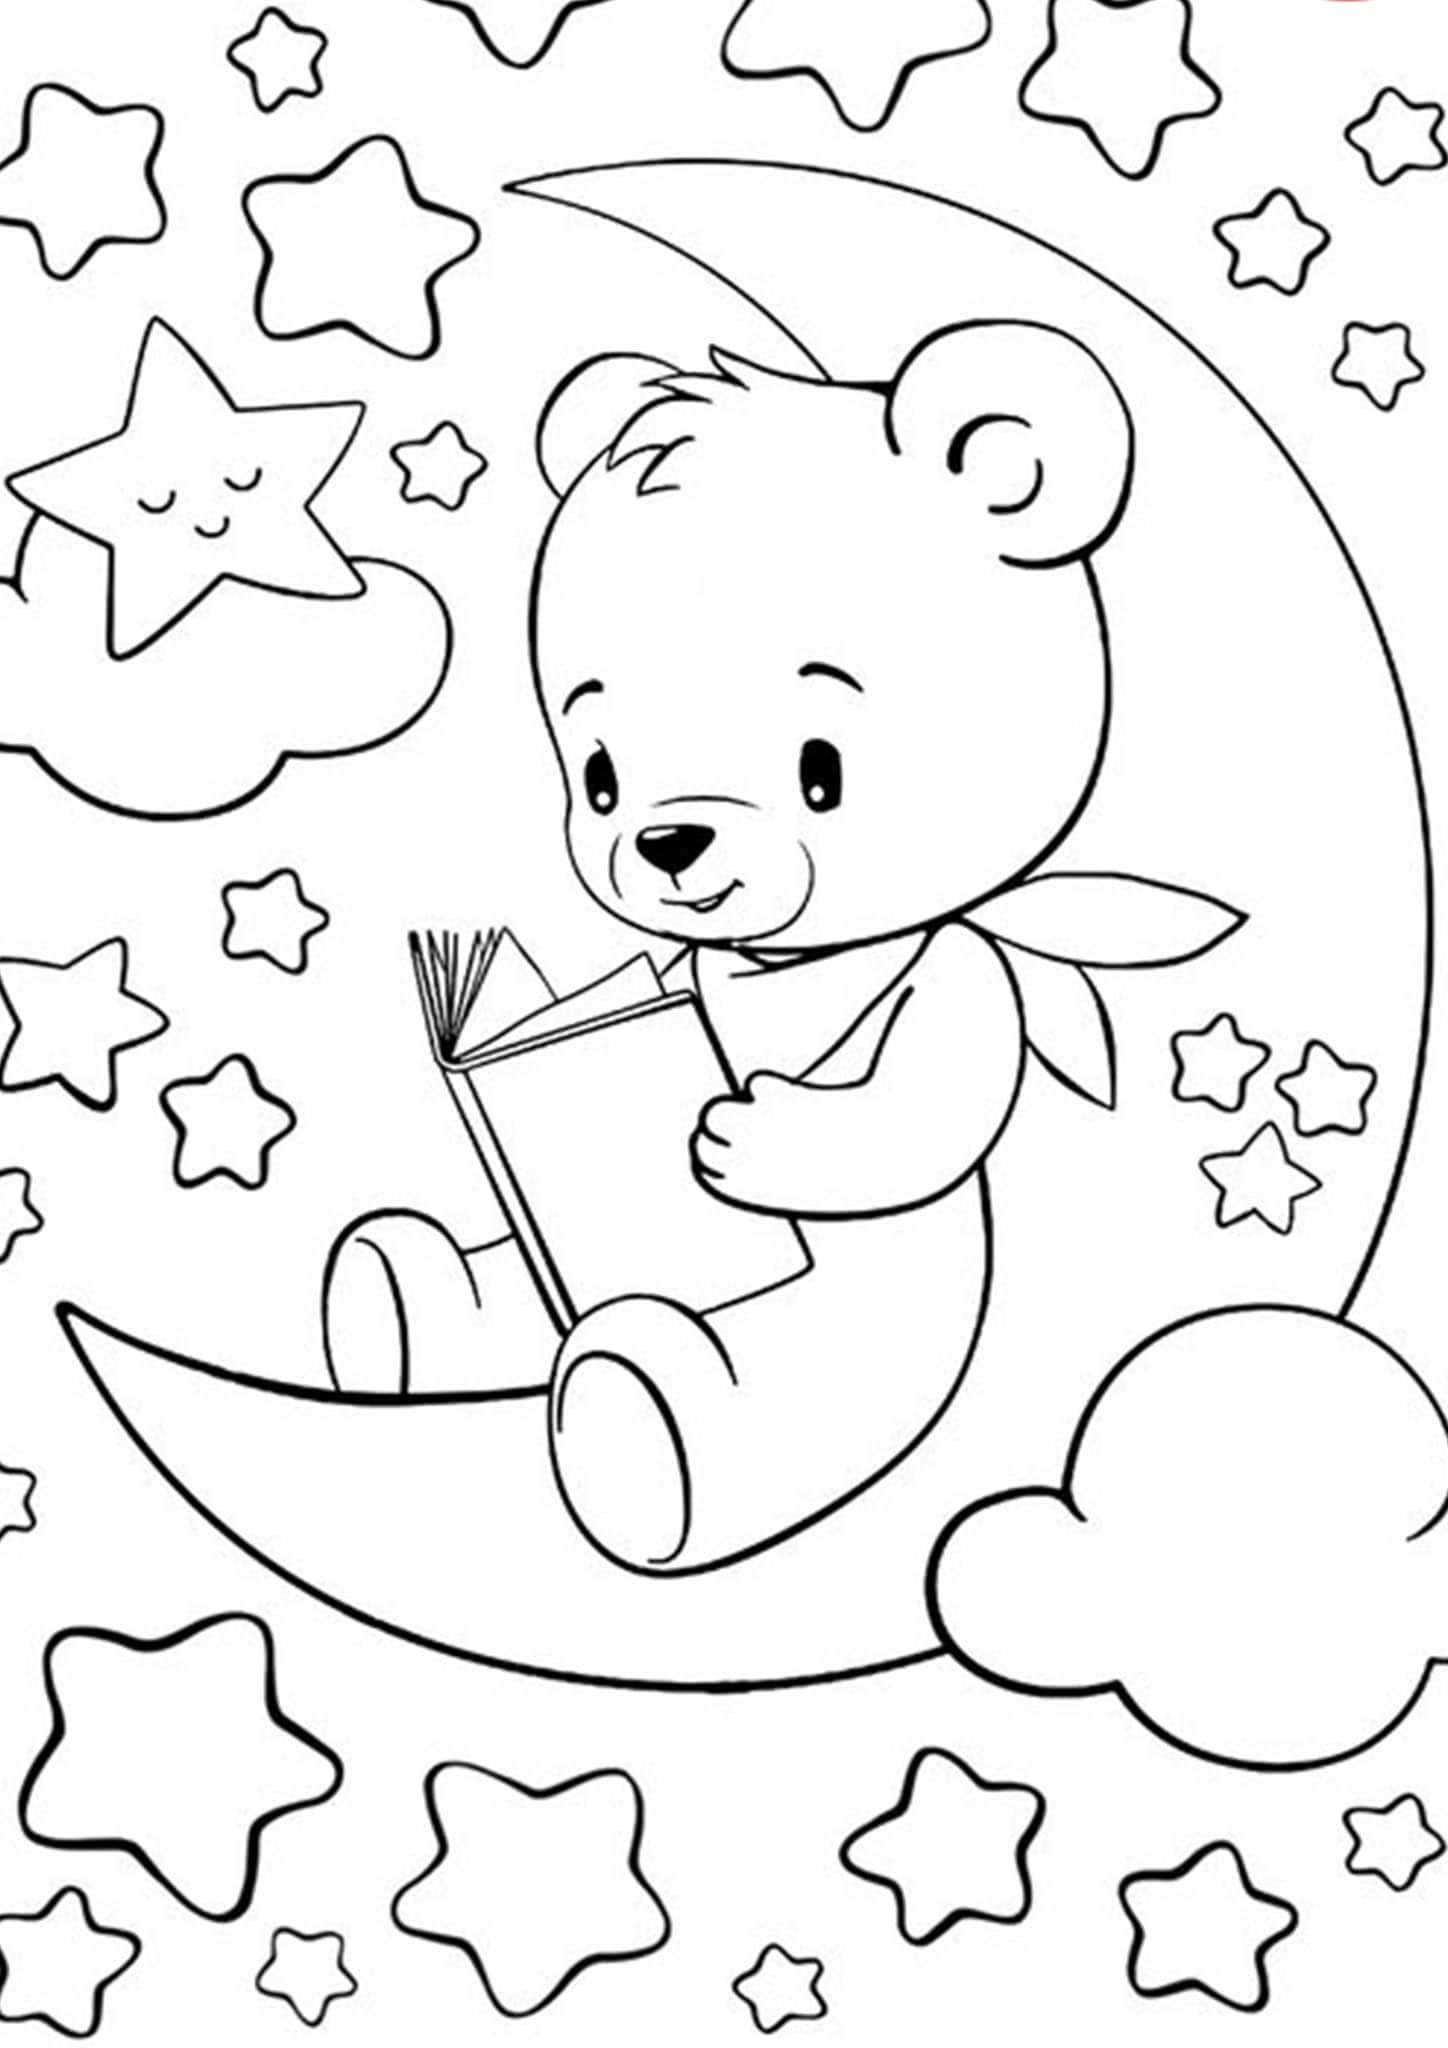 free coloring pages bears bear coloring pages to download and print for free pages coloring free bears